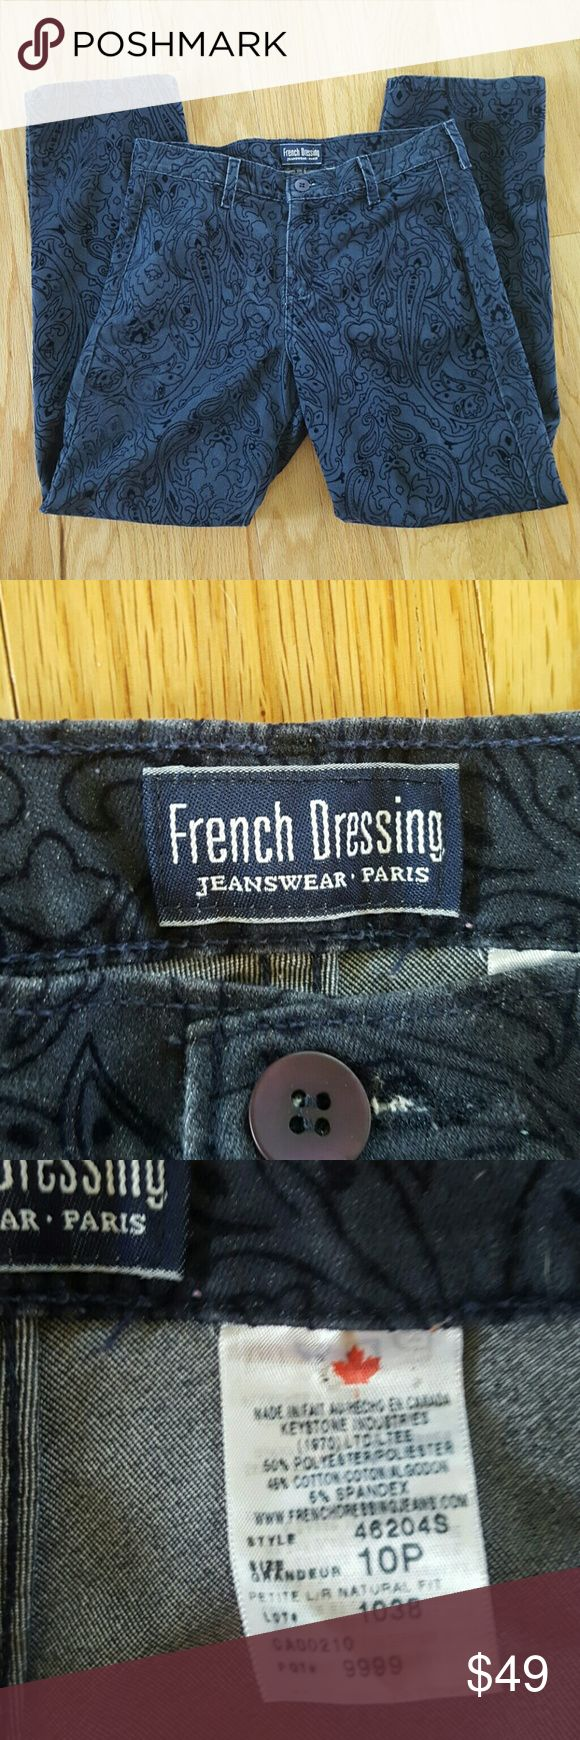 Spotted while shopping on Poshmark: French Dressing Jeans! #poshmark #fashion #shopping #style #French Dressing #Denim